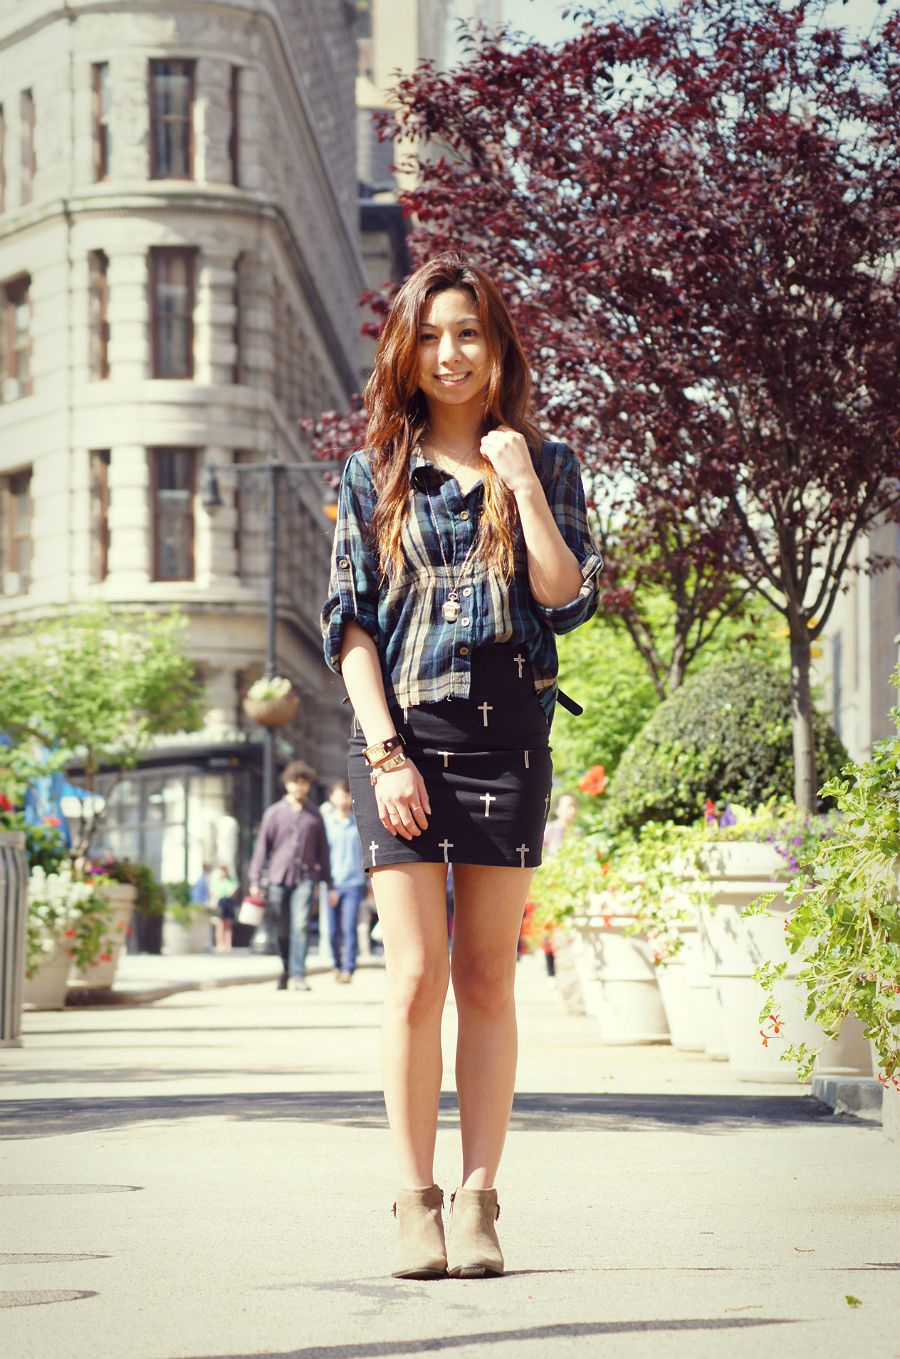 WEARING: PLAID SHIRT (OLD) + URBAN OUTFITTERS NECKLACE + BERSHKA SKIRT + MICHAEL KORS WATCH + ETSY RINGS + FRANCESCA'S SNAKE MIDI RING + COACH VINTAGE BAG + STEVE MADDEN ANKLE BOOTS